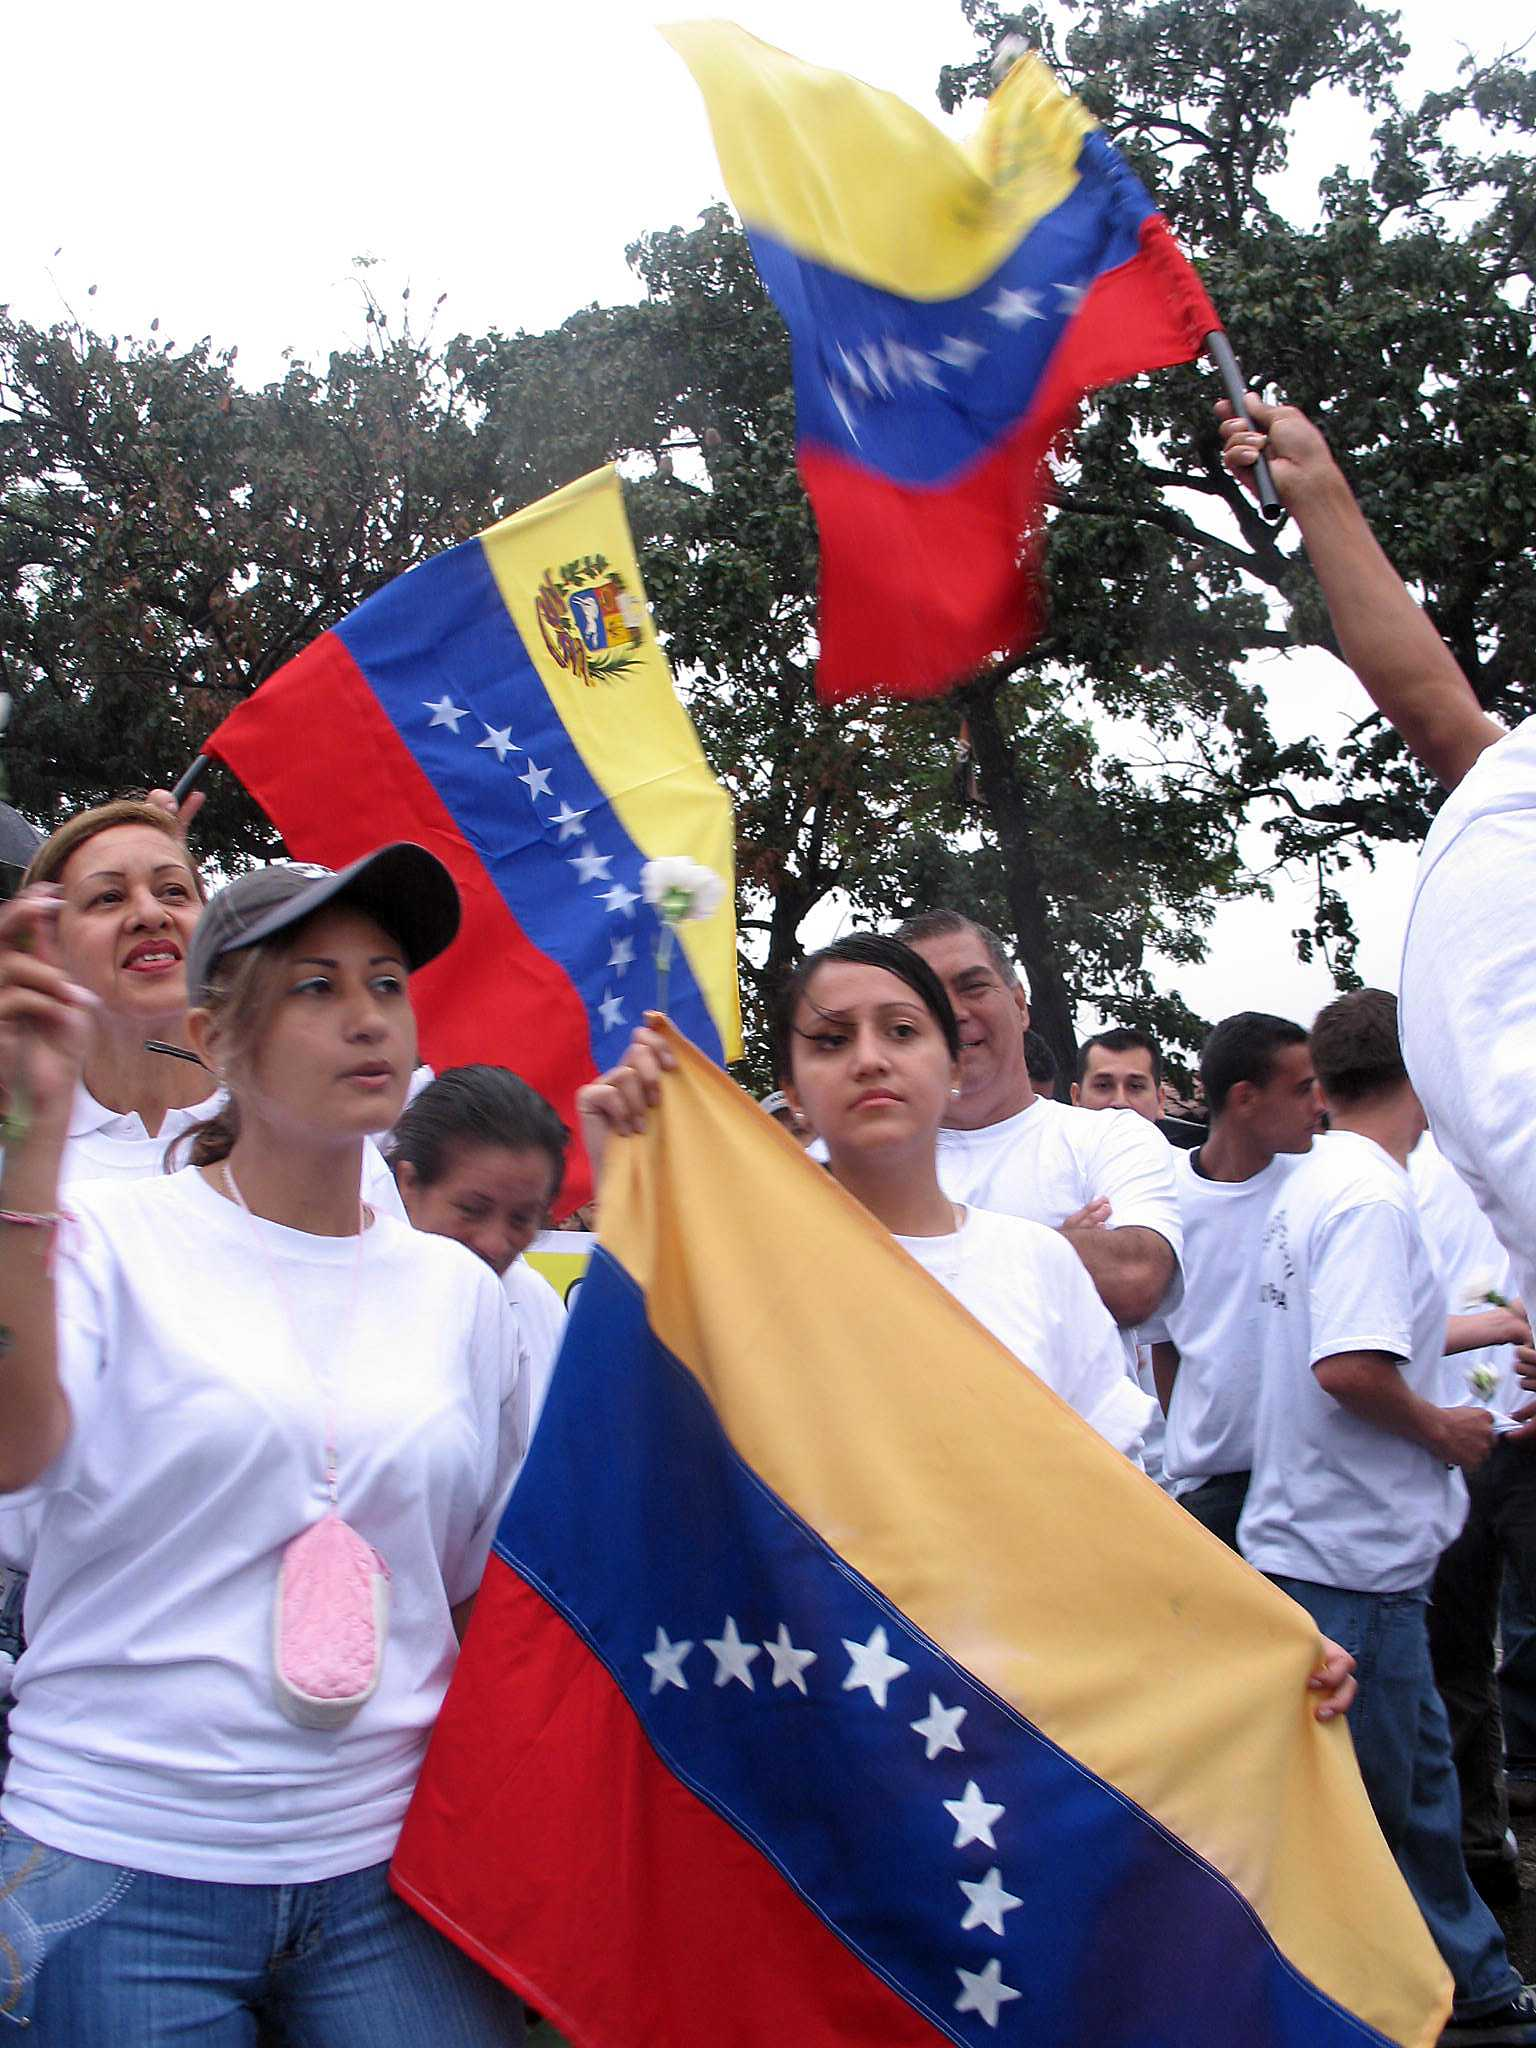 Residents of the Venezuela-Colombia border town San Antonio, Venezuela, rally March 6, 2008, for peace between the two countries. The banner reads